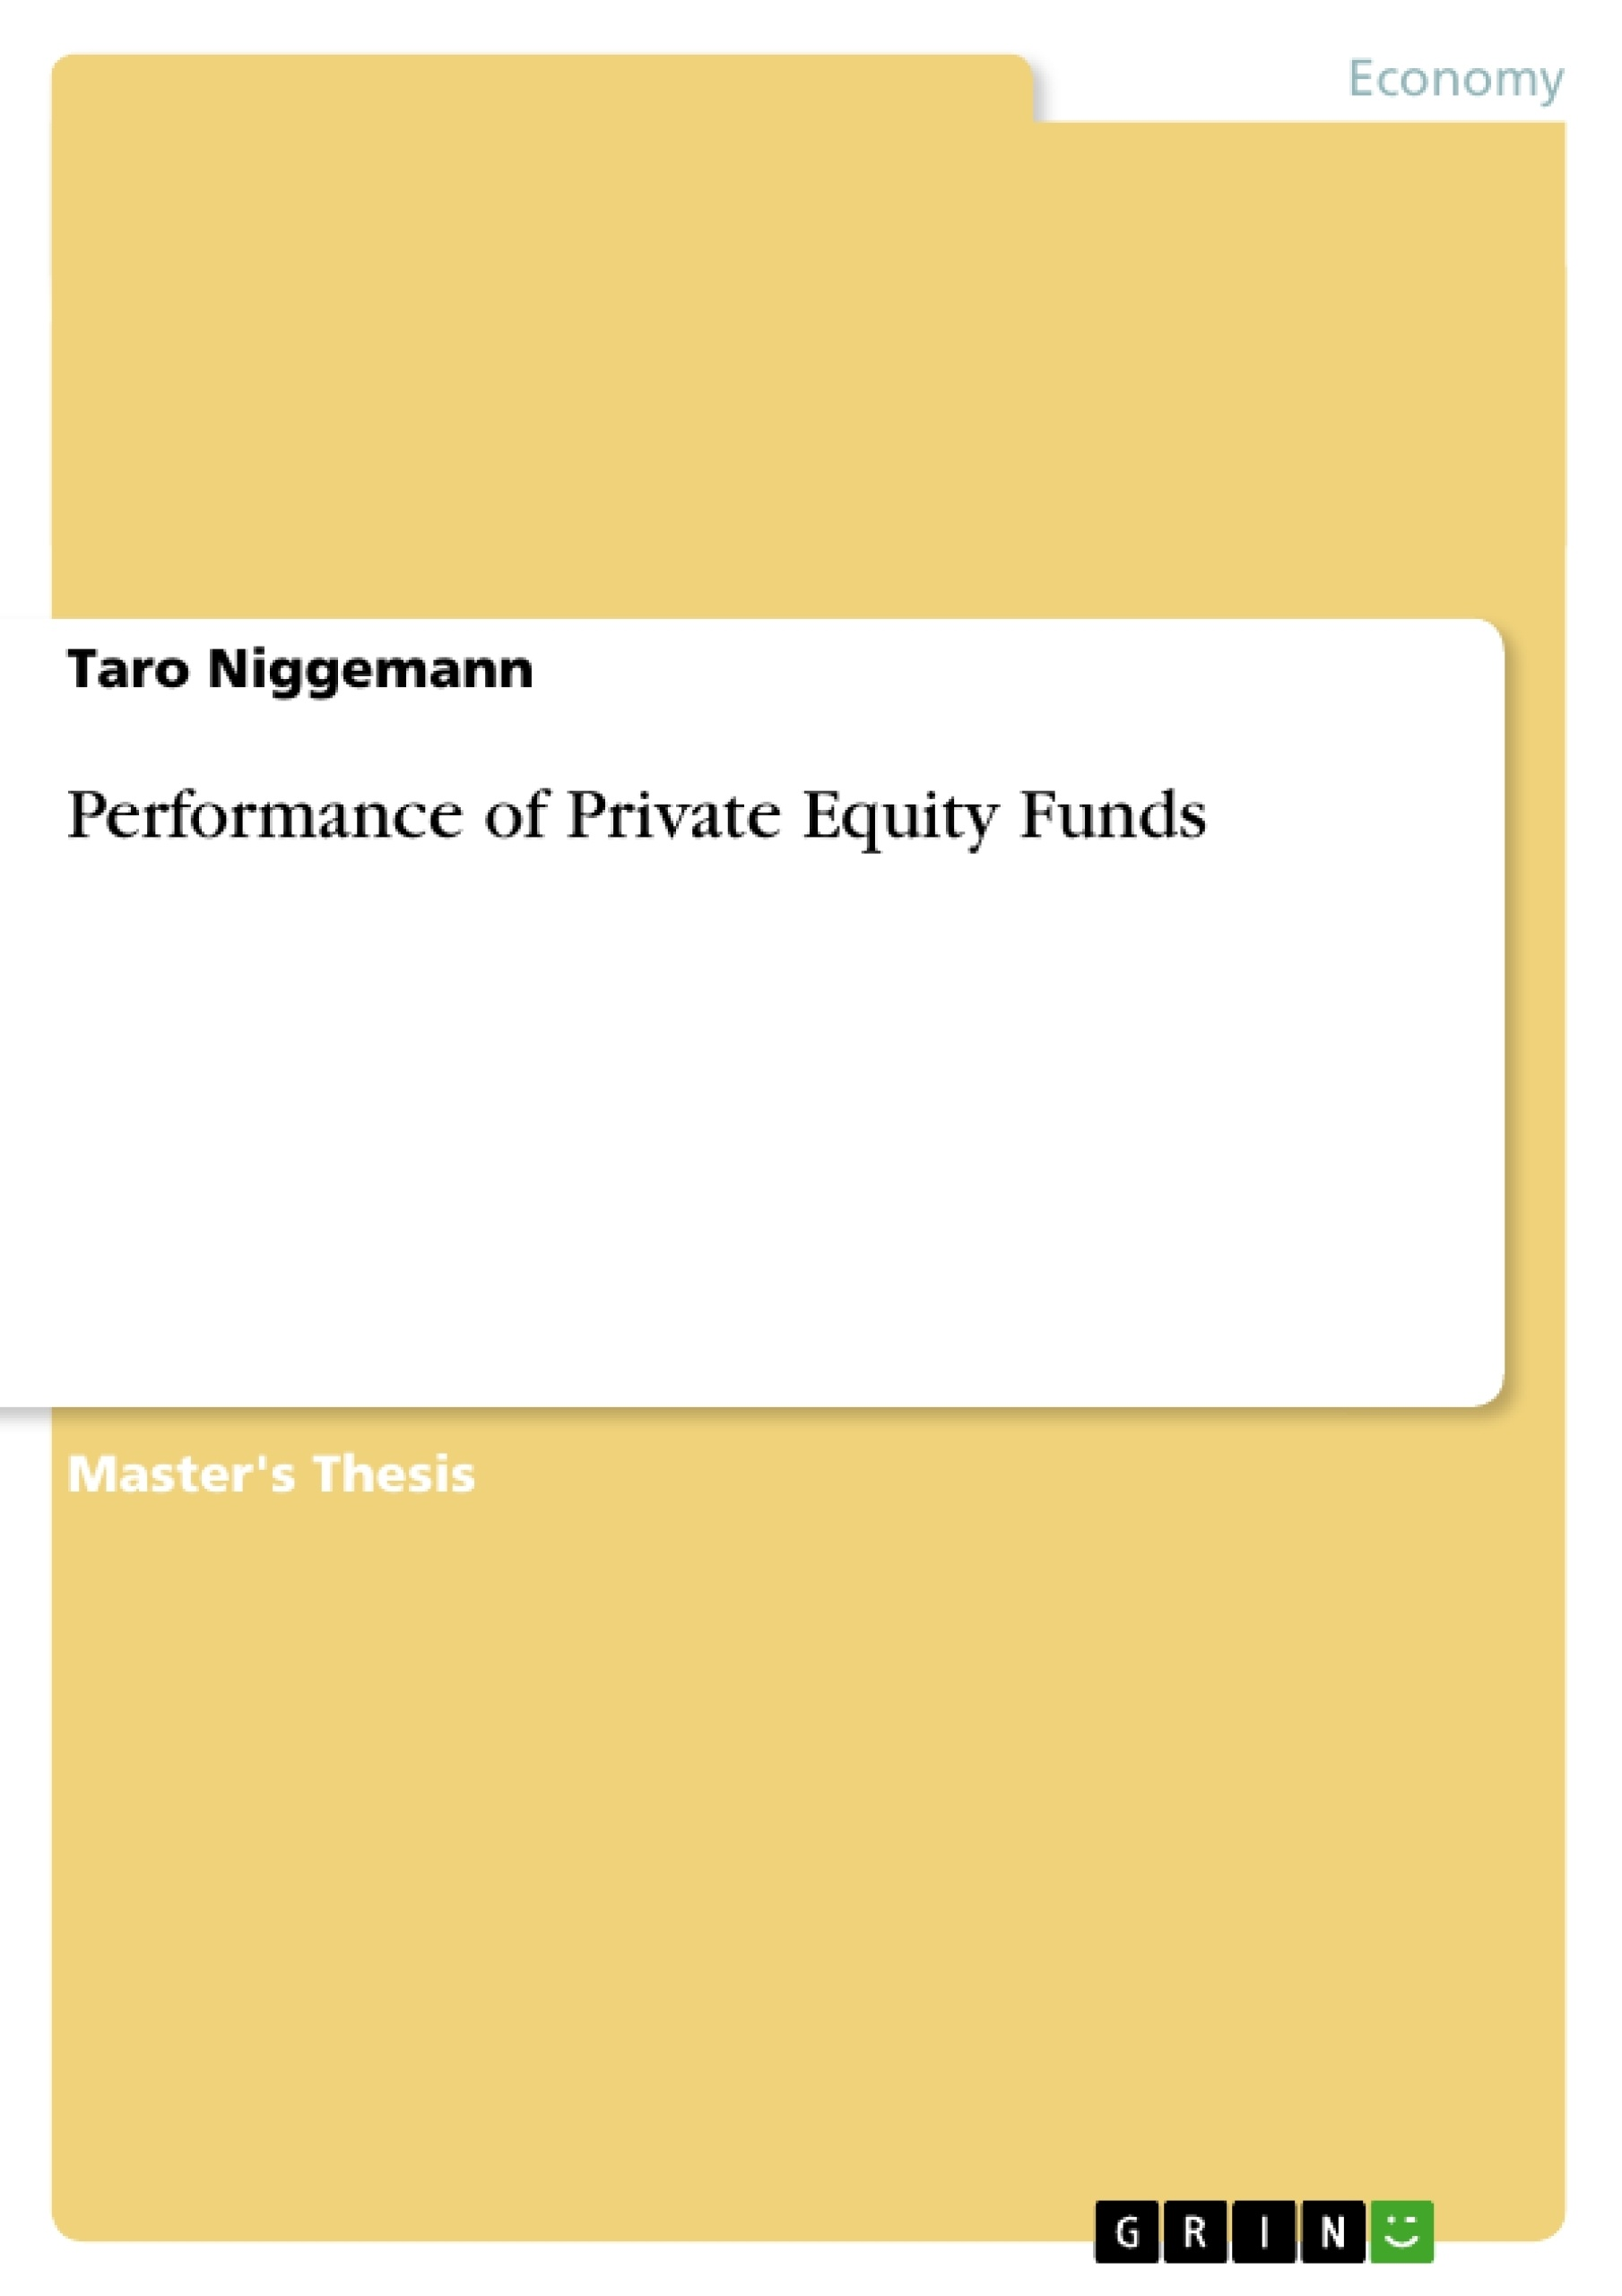 Performance Of Private Equity Firms Research Papers – 567196